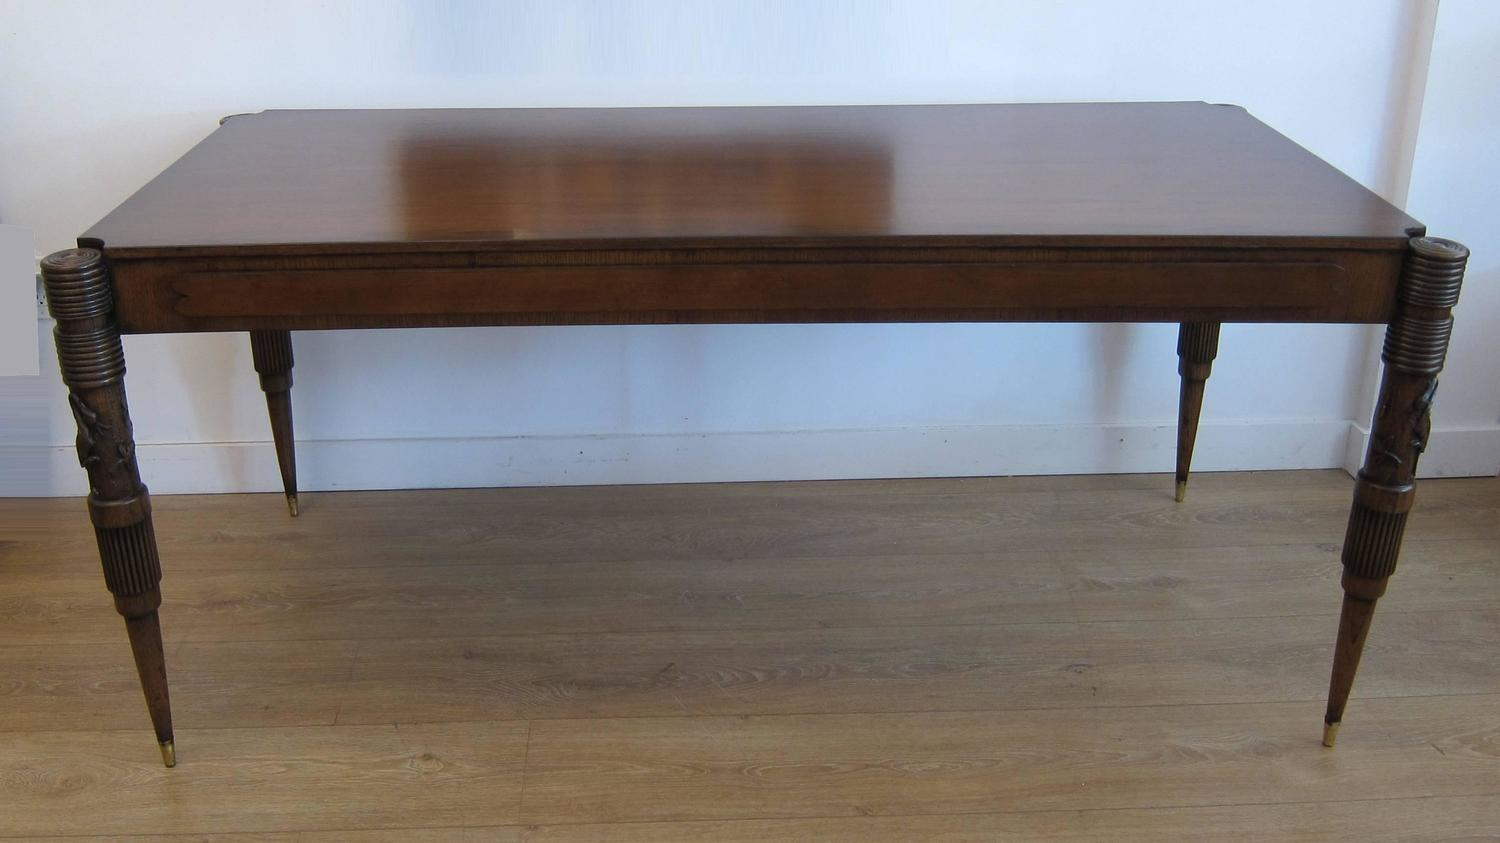 pier luigi colli dining table at 1stdibs